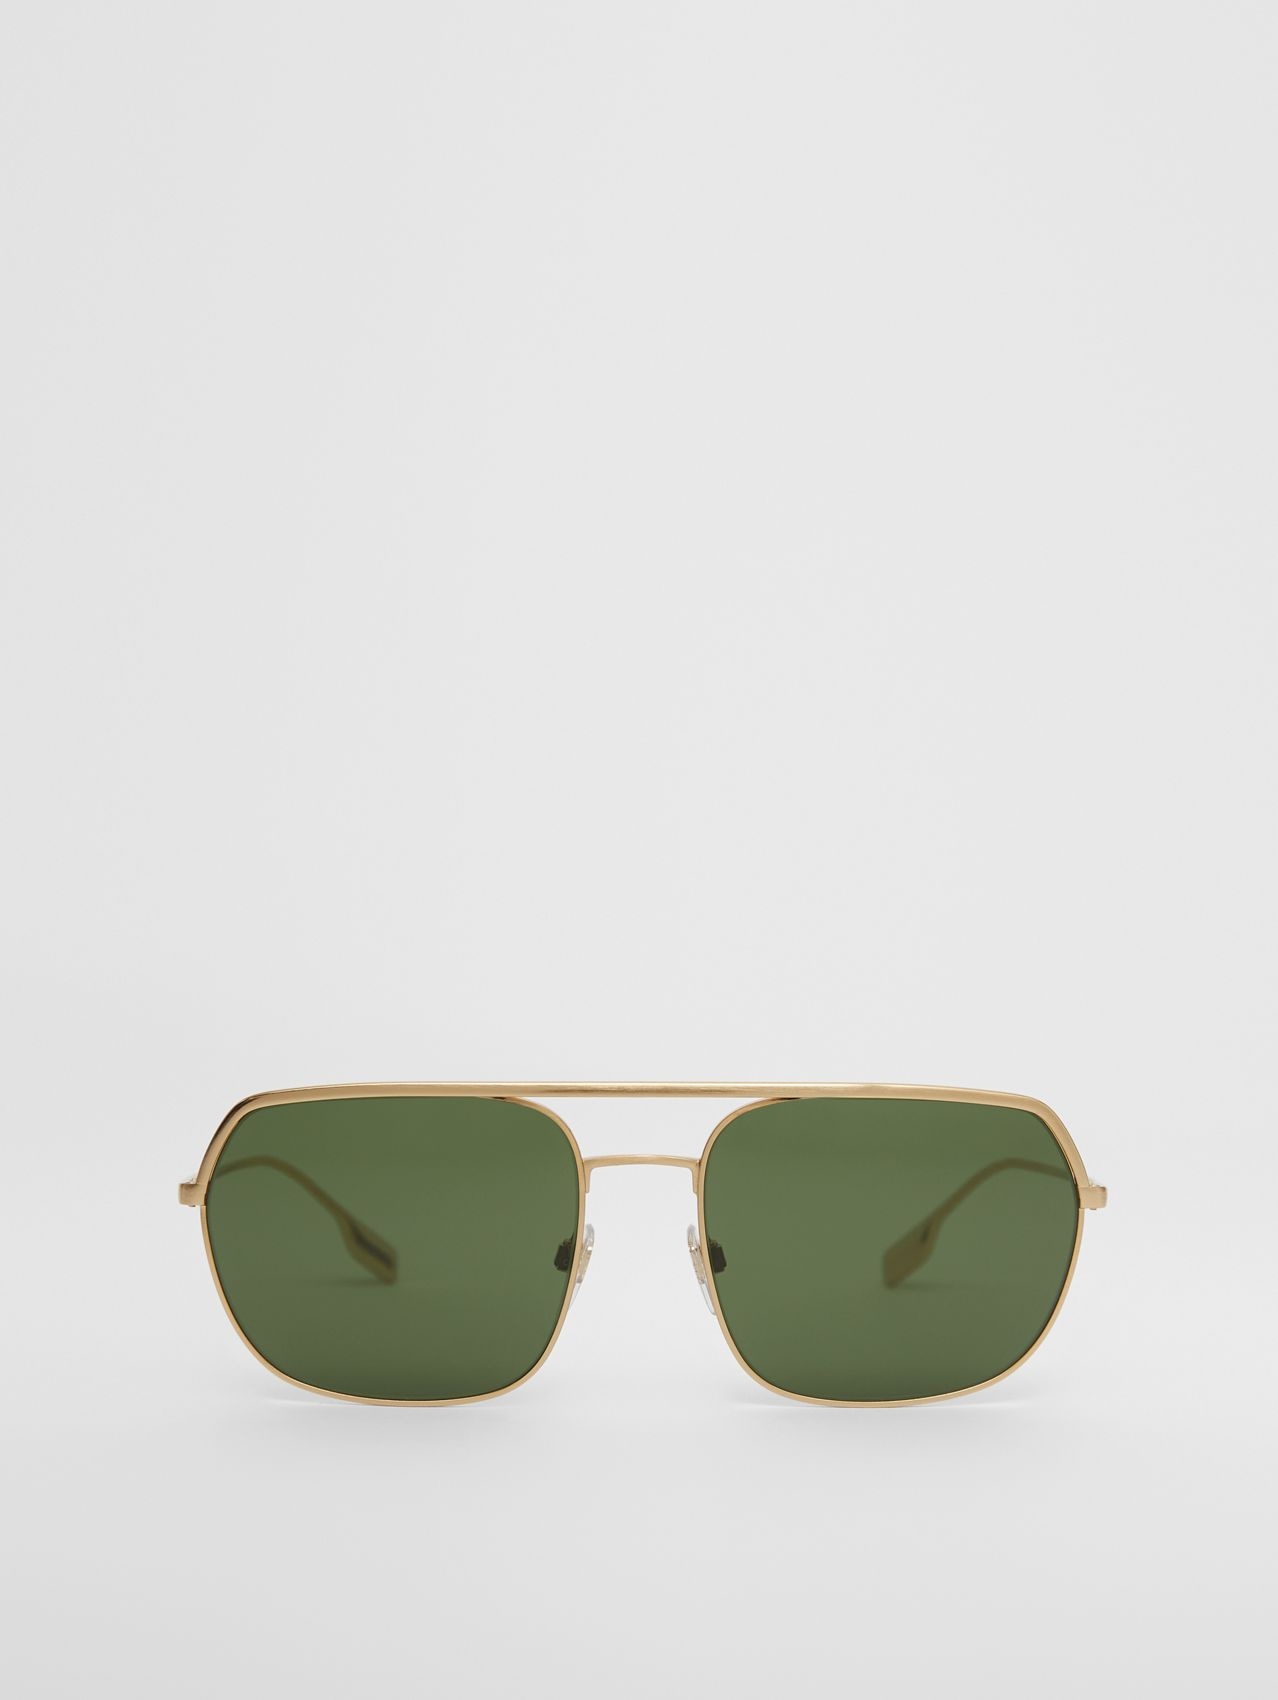 Square Pilot Sunglasses in Vintage Brushed Gold